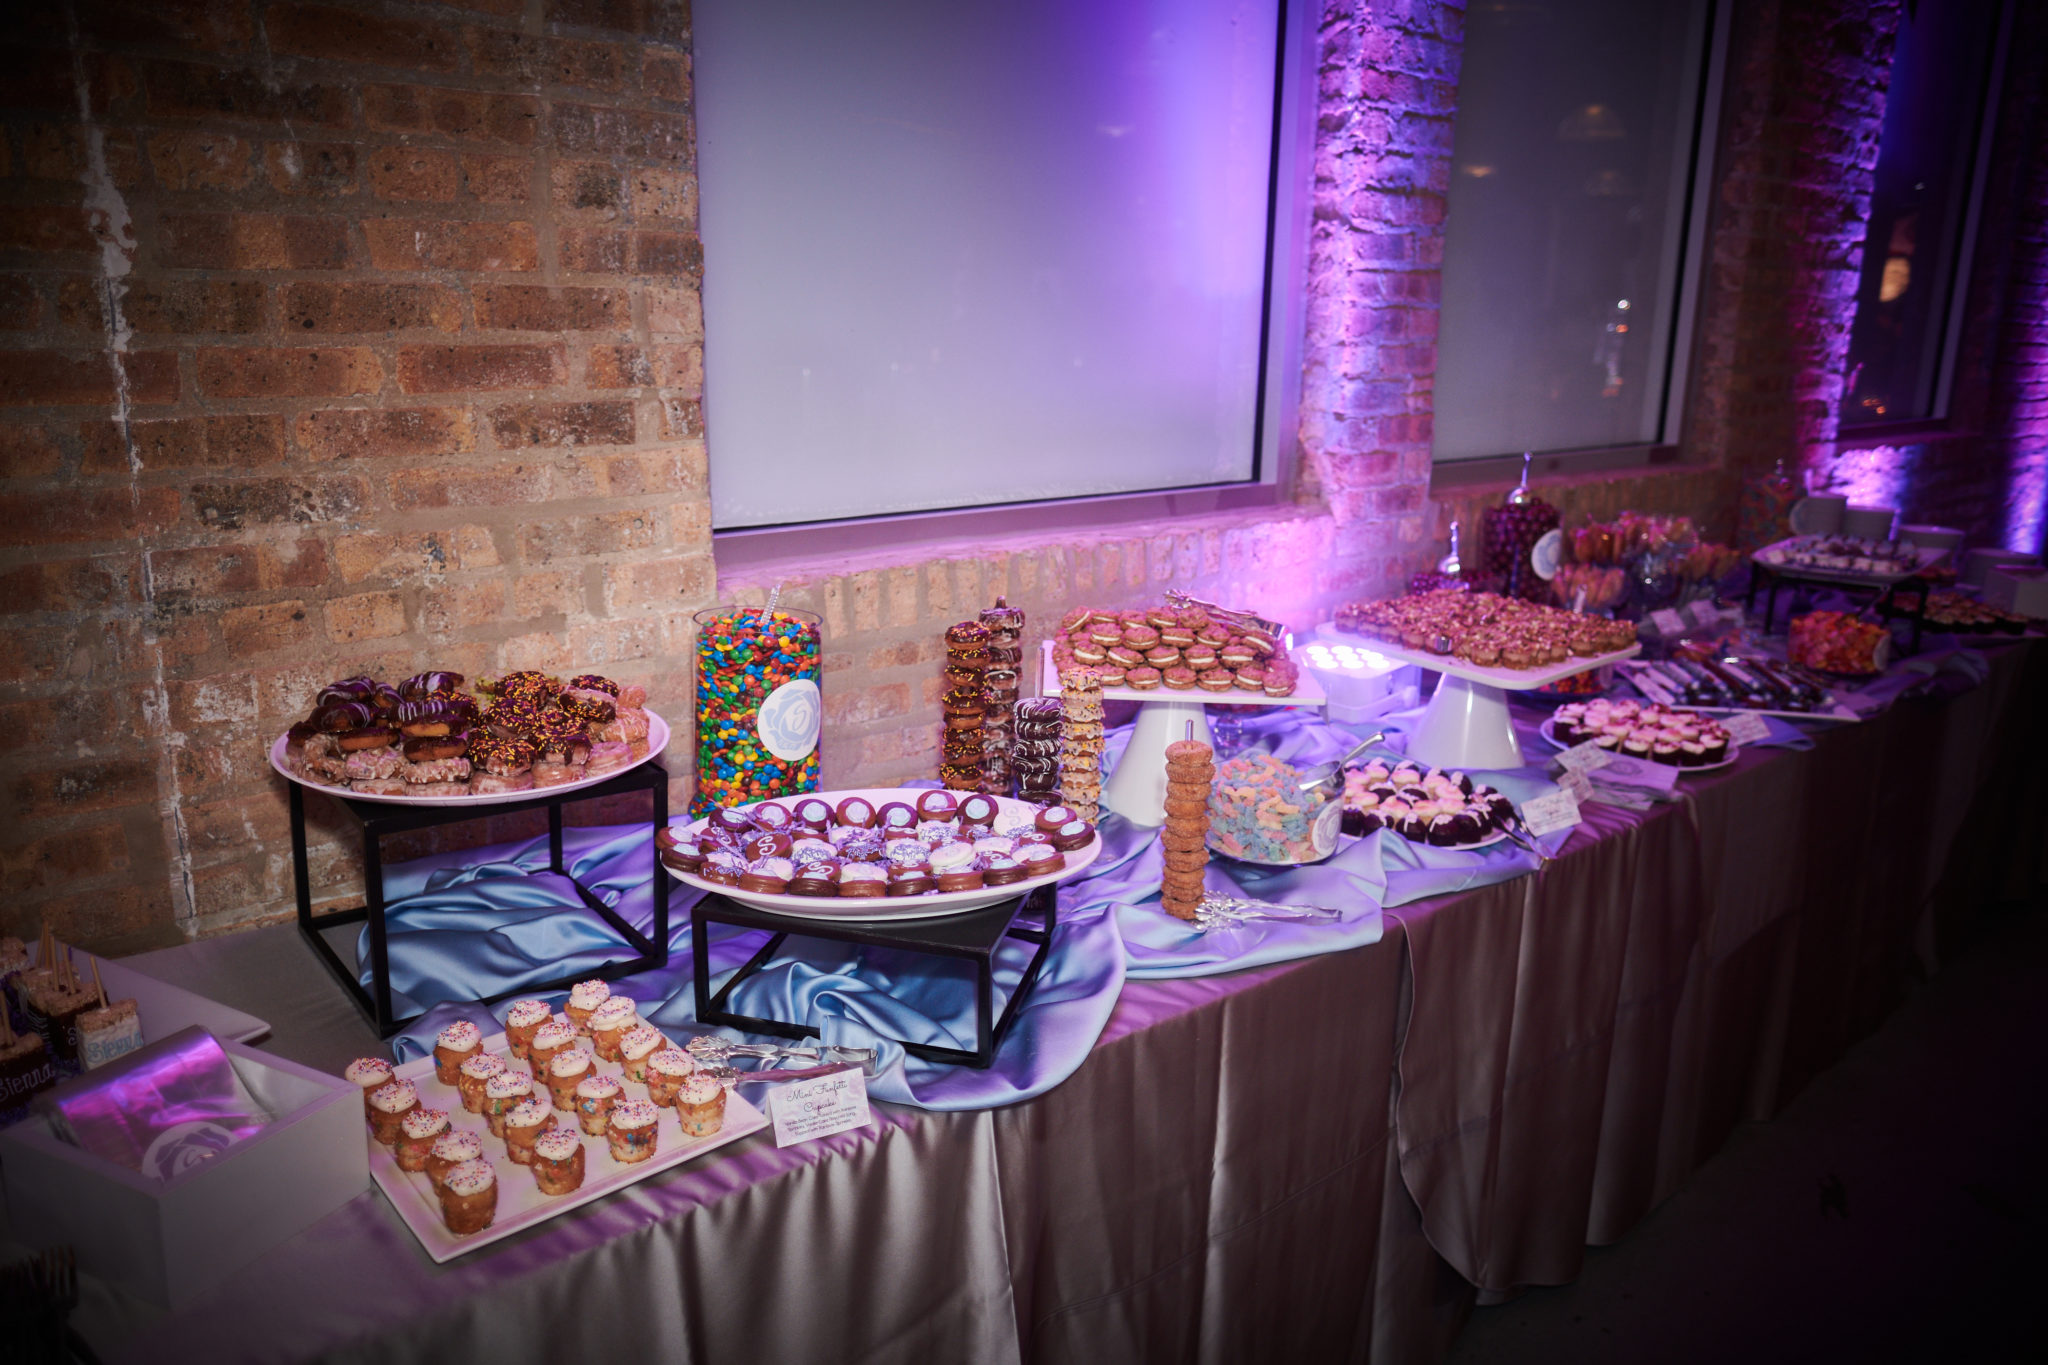 Sienna's Bat Mitzvah at Anshe Emet and Architectural Events